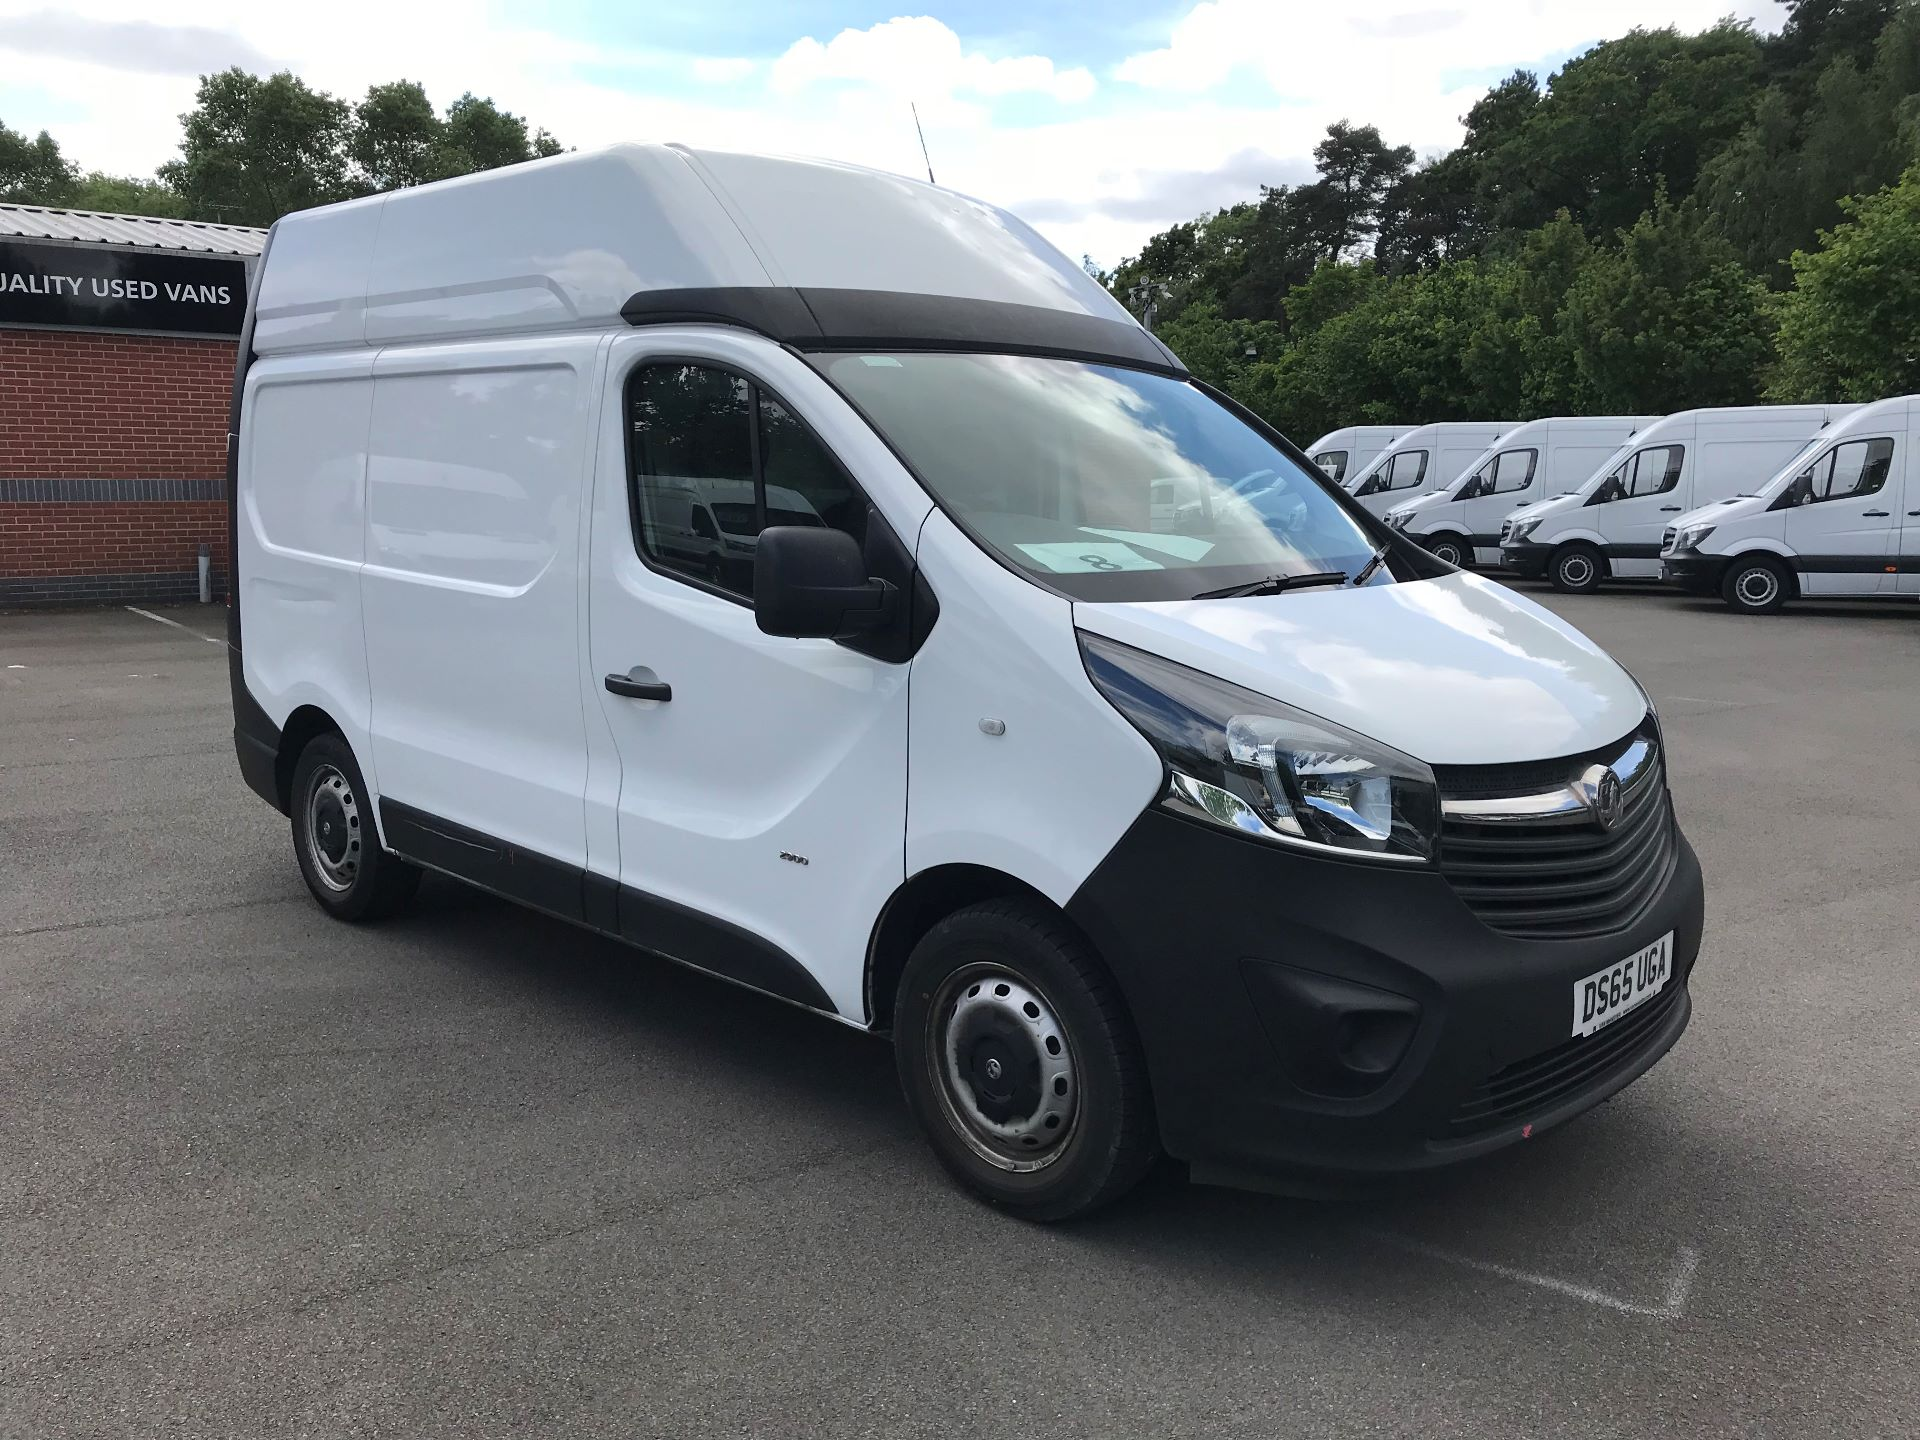 2016 Vauxhall Vivaro  L1 H2 2900 1.6 BITURBO 120PS ECOFLEX  EURO 5 *VALUE  RANGE VEHICLE CONDITION REFLECTED IN PRICE* (DS65UGA)